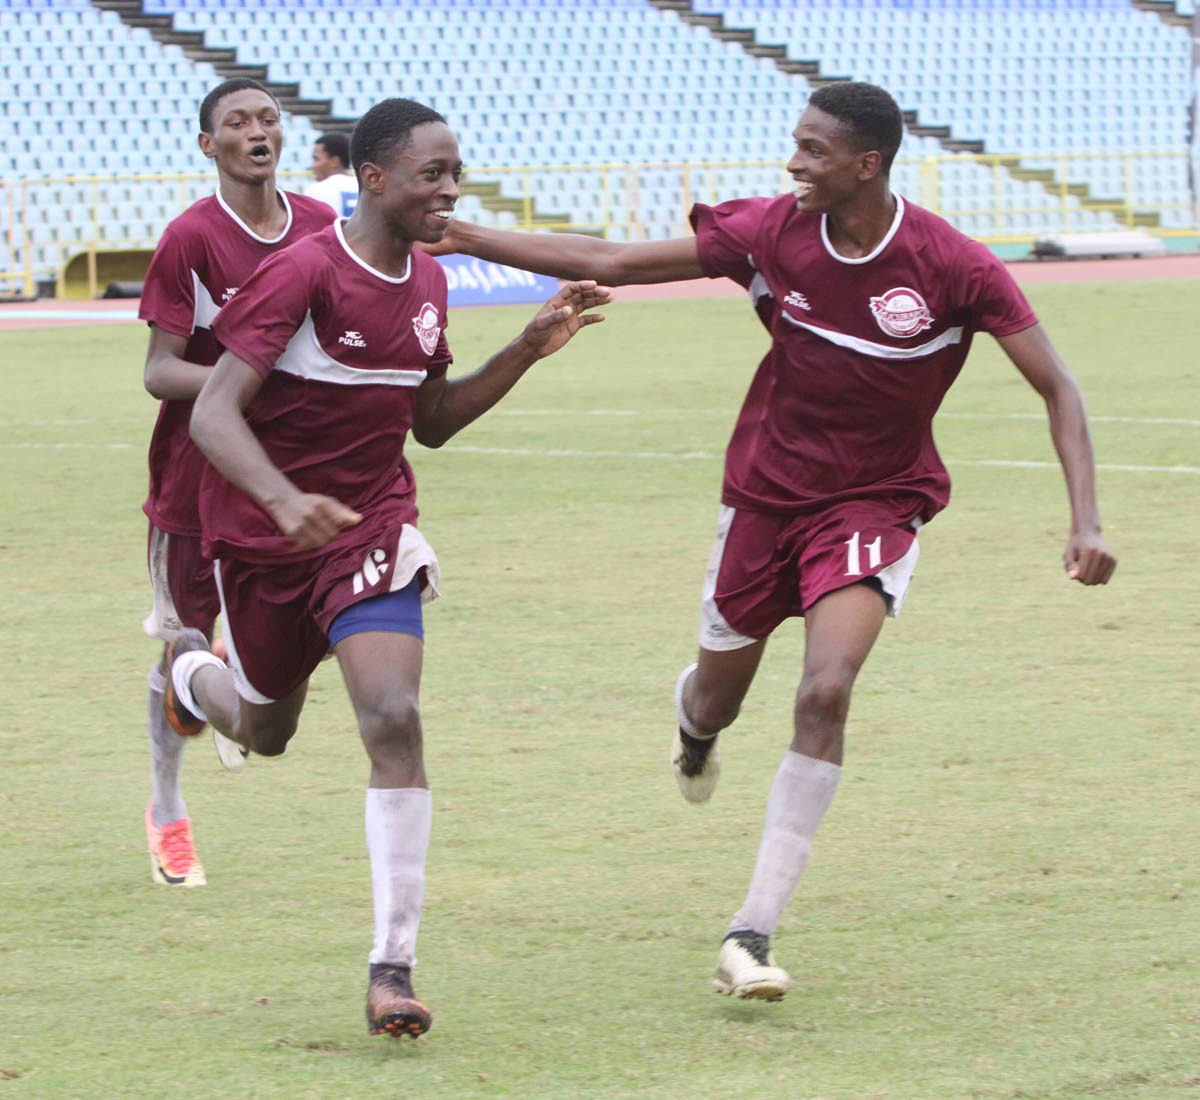 Kevon Edwards of East Mucurapo, centre, celebrates his goal with teammates yesterday in an Intercol match against Diego Martin North yesterday at the Hasely Crawford Stadium, Mucurapo.